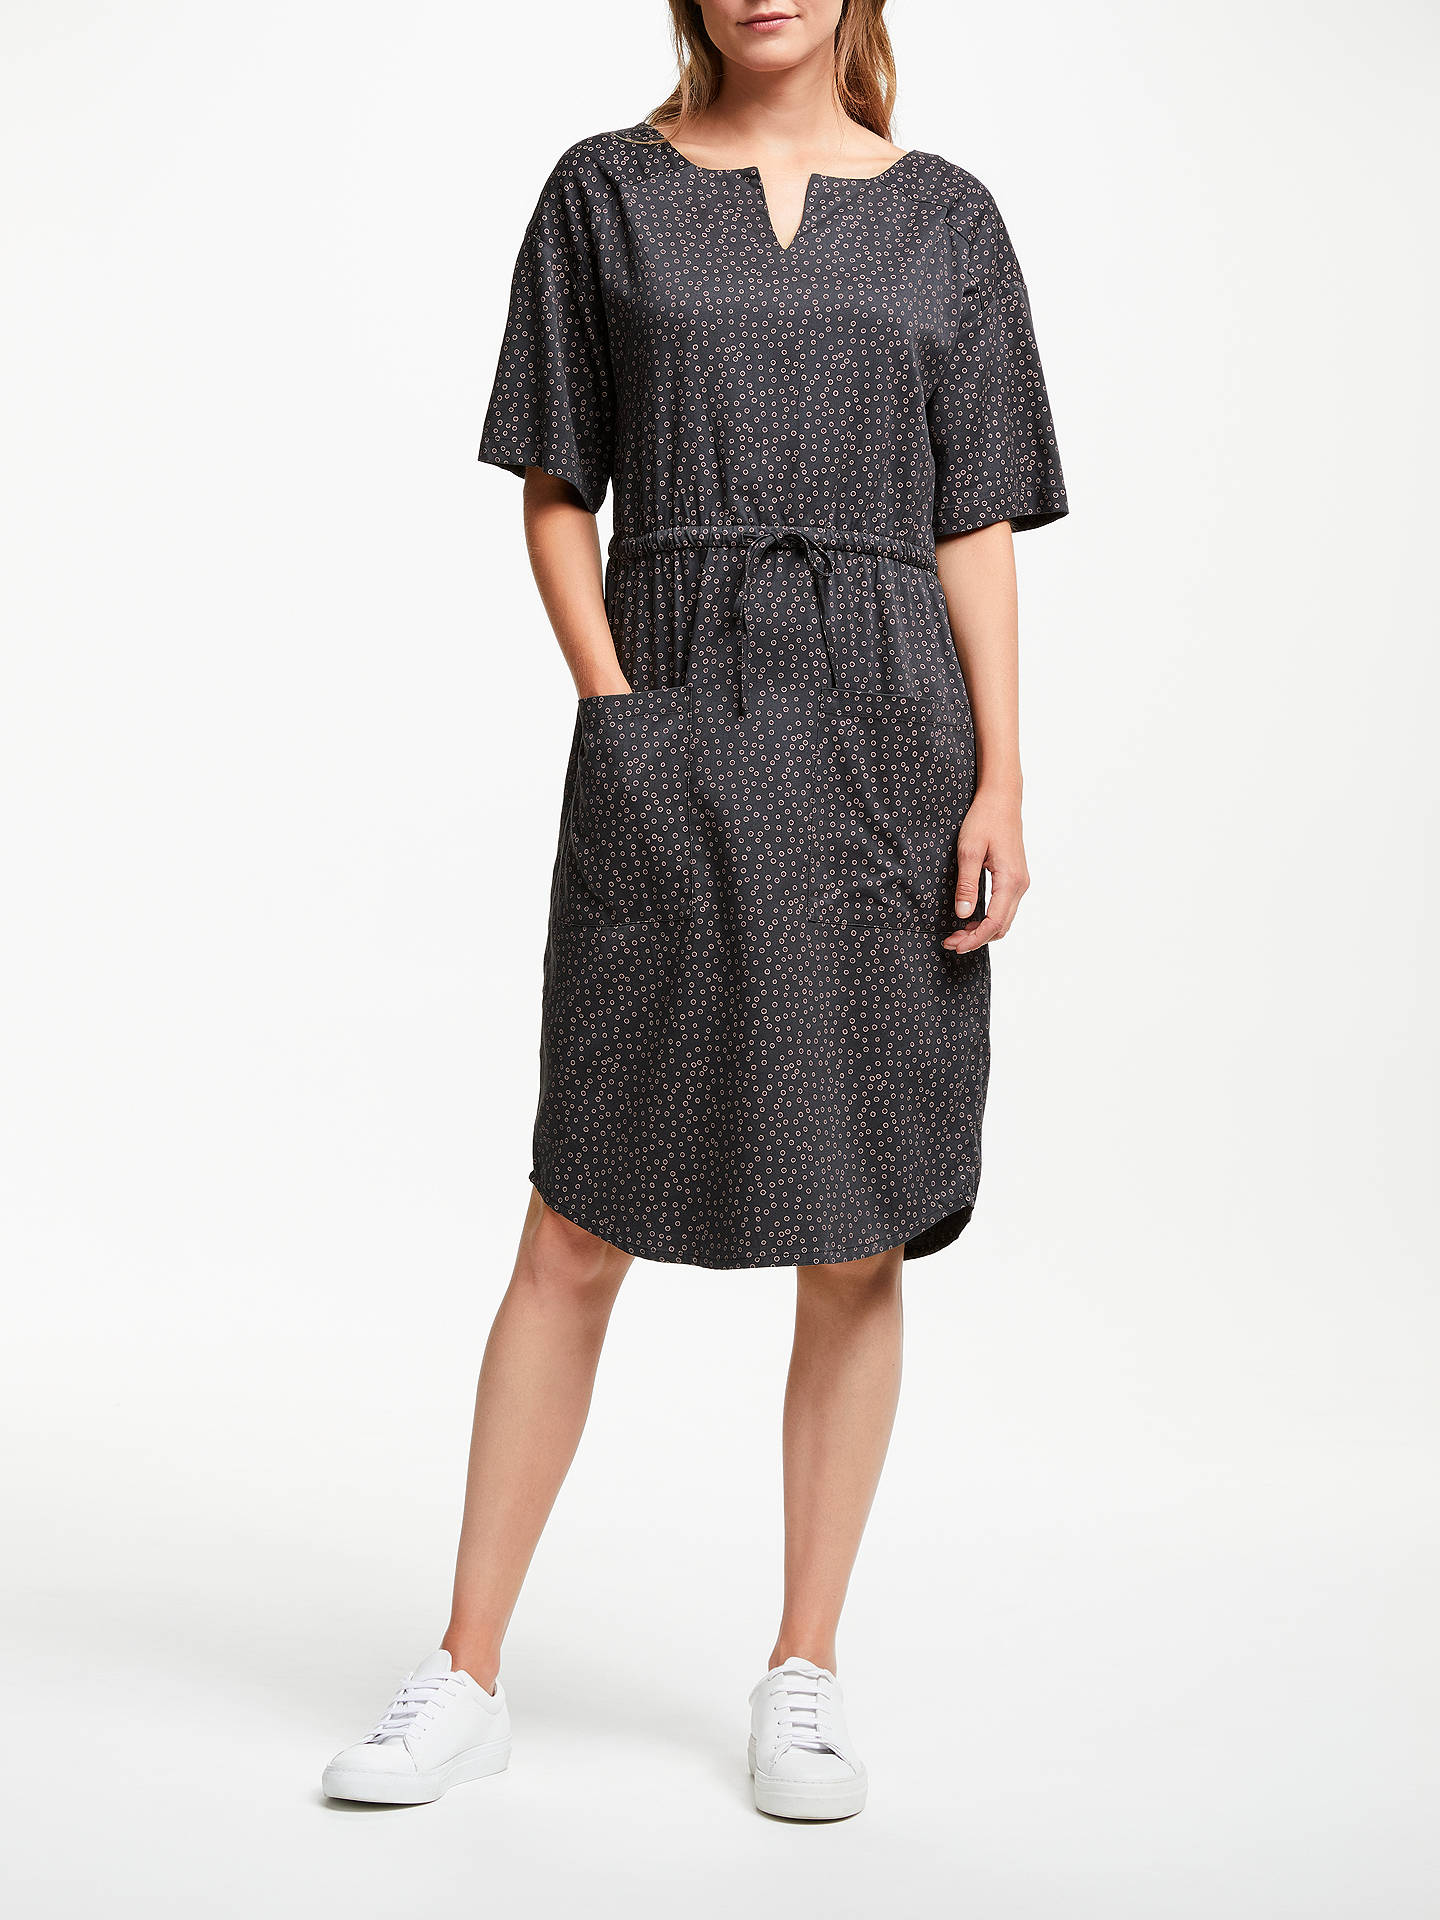 BuyThought Sheba Ray Dress, Graphite, 8 Online at johnlewis.com